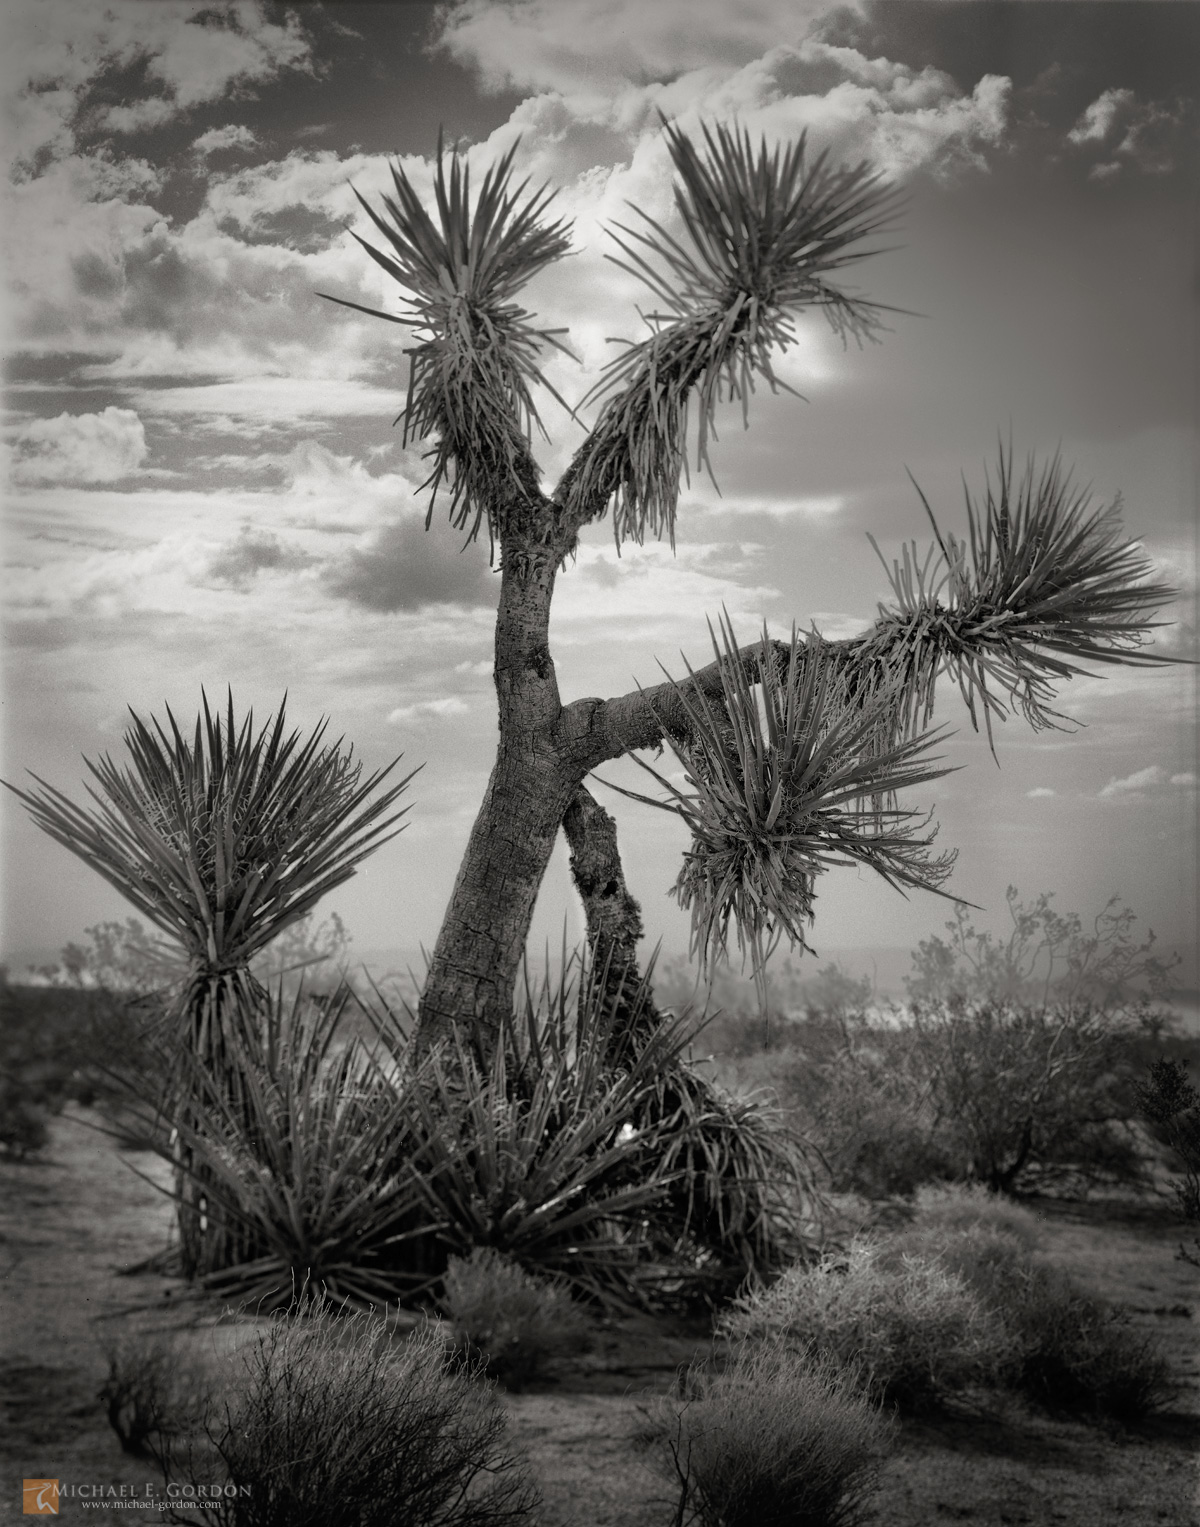 Mojave Yucca,Yucca schidigera,summer,monsoon,clouds,stormy,weather,Mojave National Preserve,shrubs,tree, photo